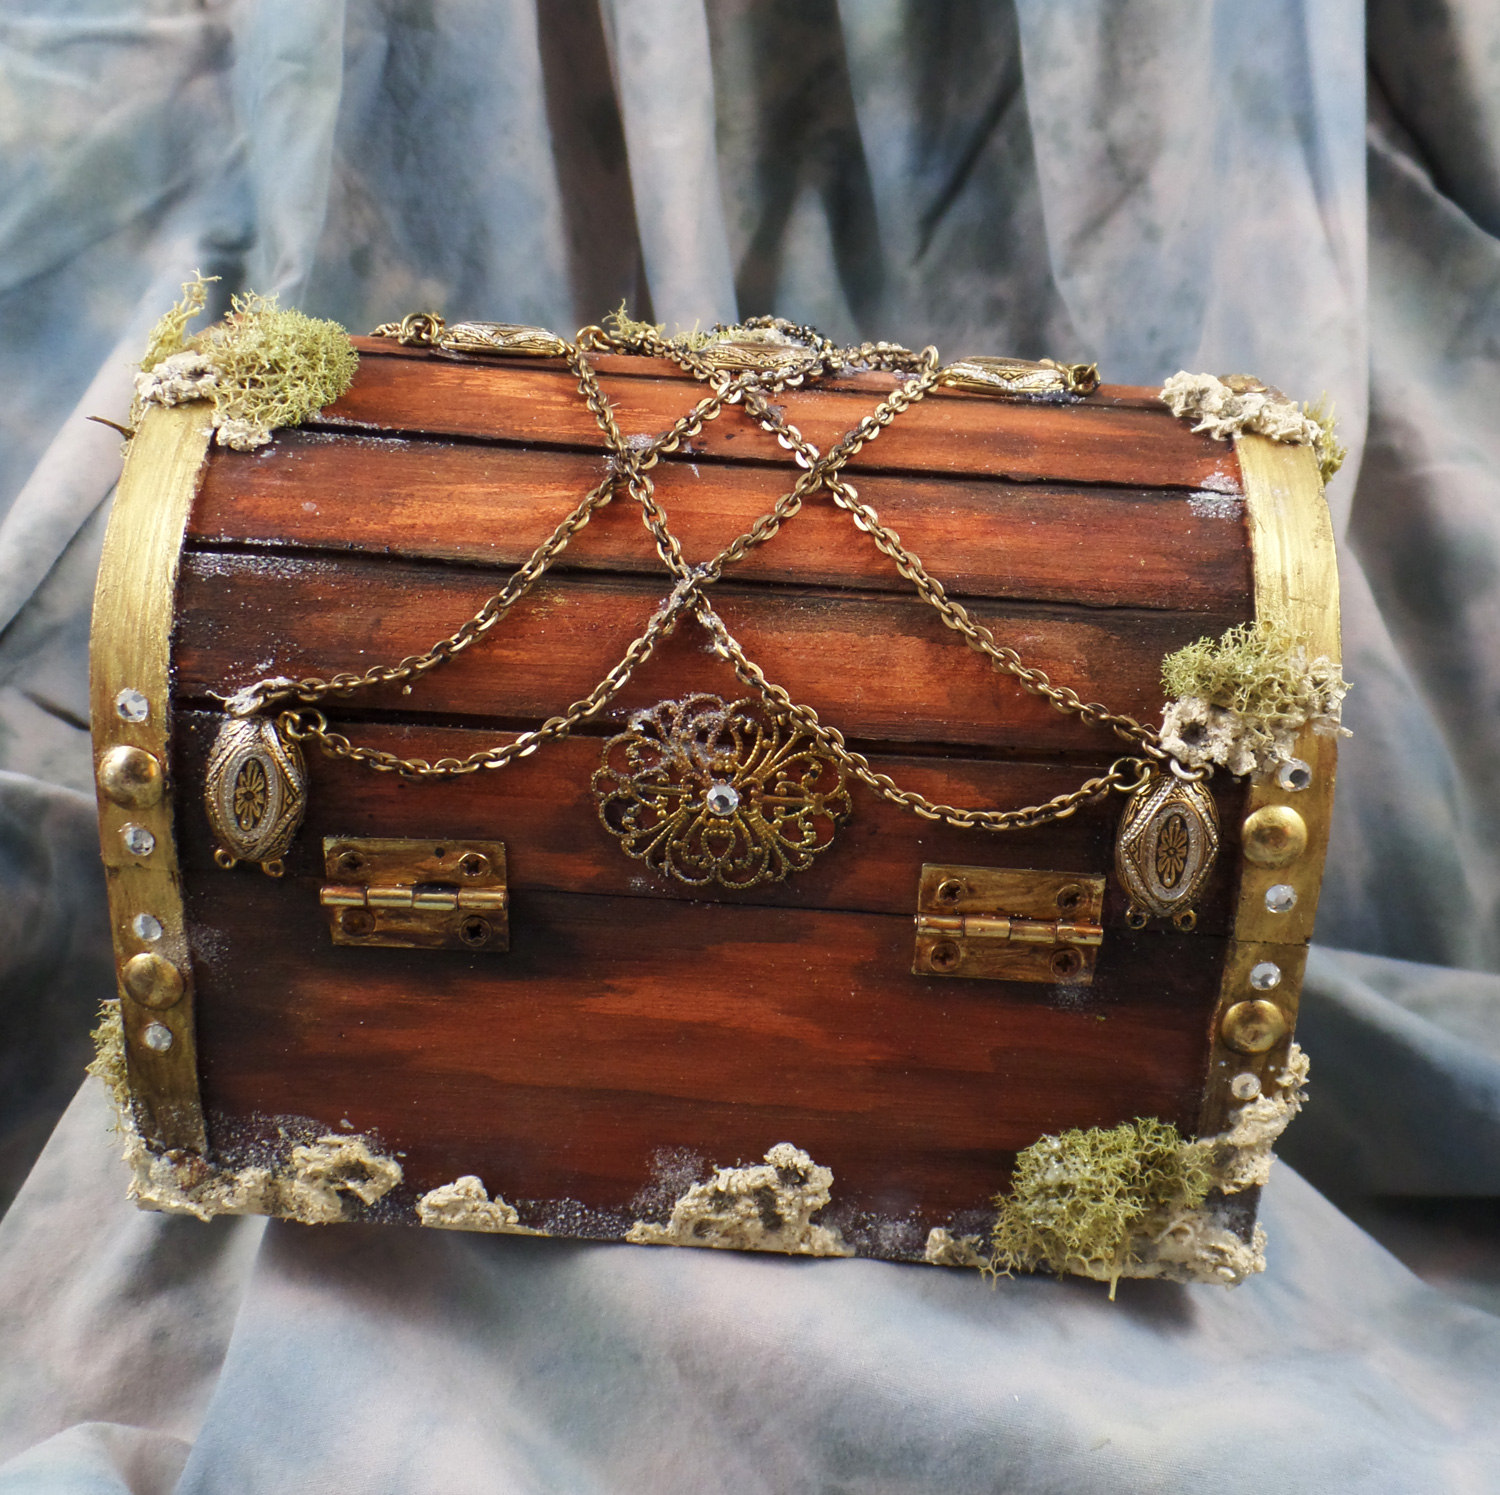 ArtResurrected-Pirate-Treasure-Chest-Tracy-Alden-9